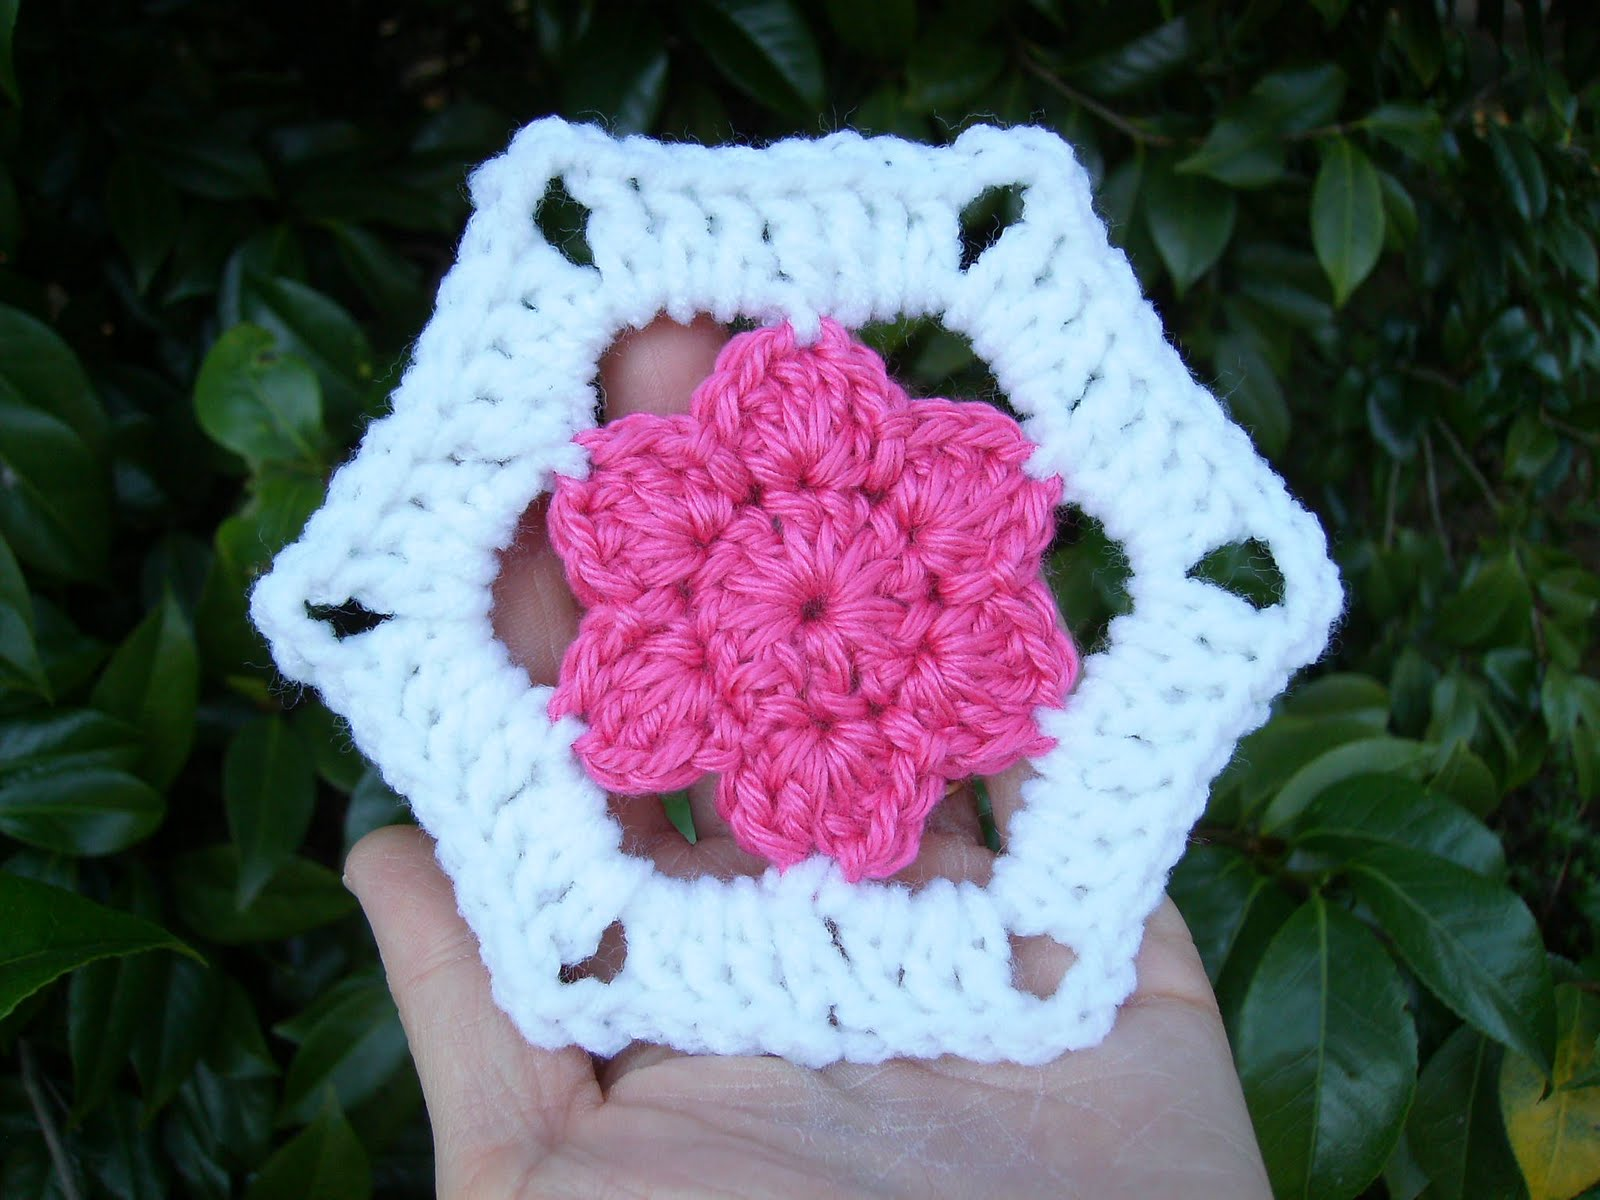 Crochet Patterns And Yarn : Scrap Yarn Crochet: Free Floral Hexagon Motif Crochet Pattern